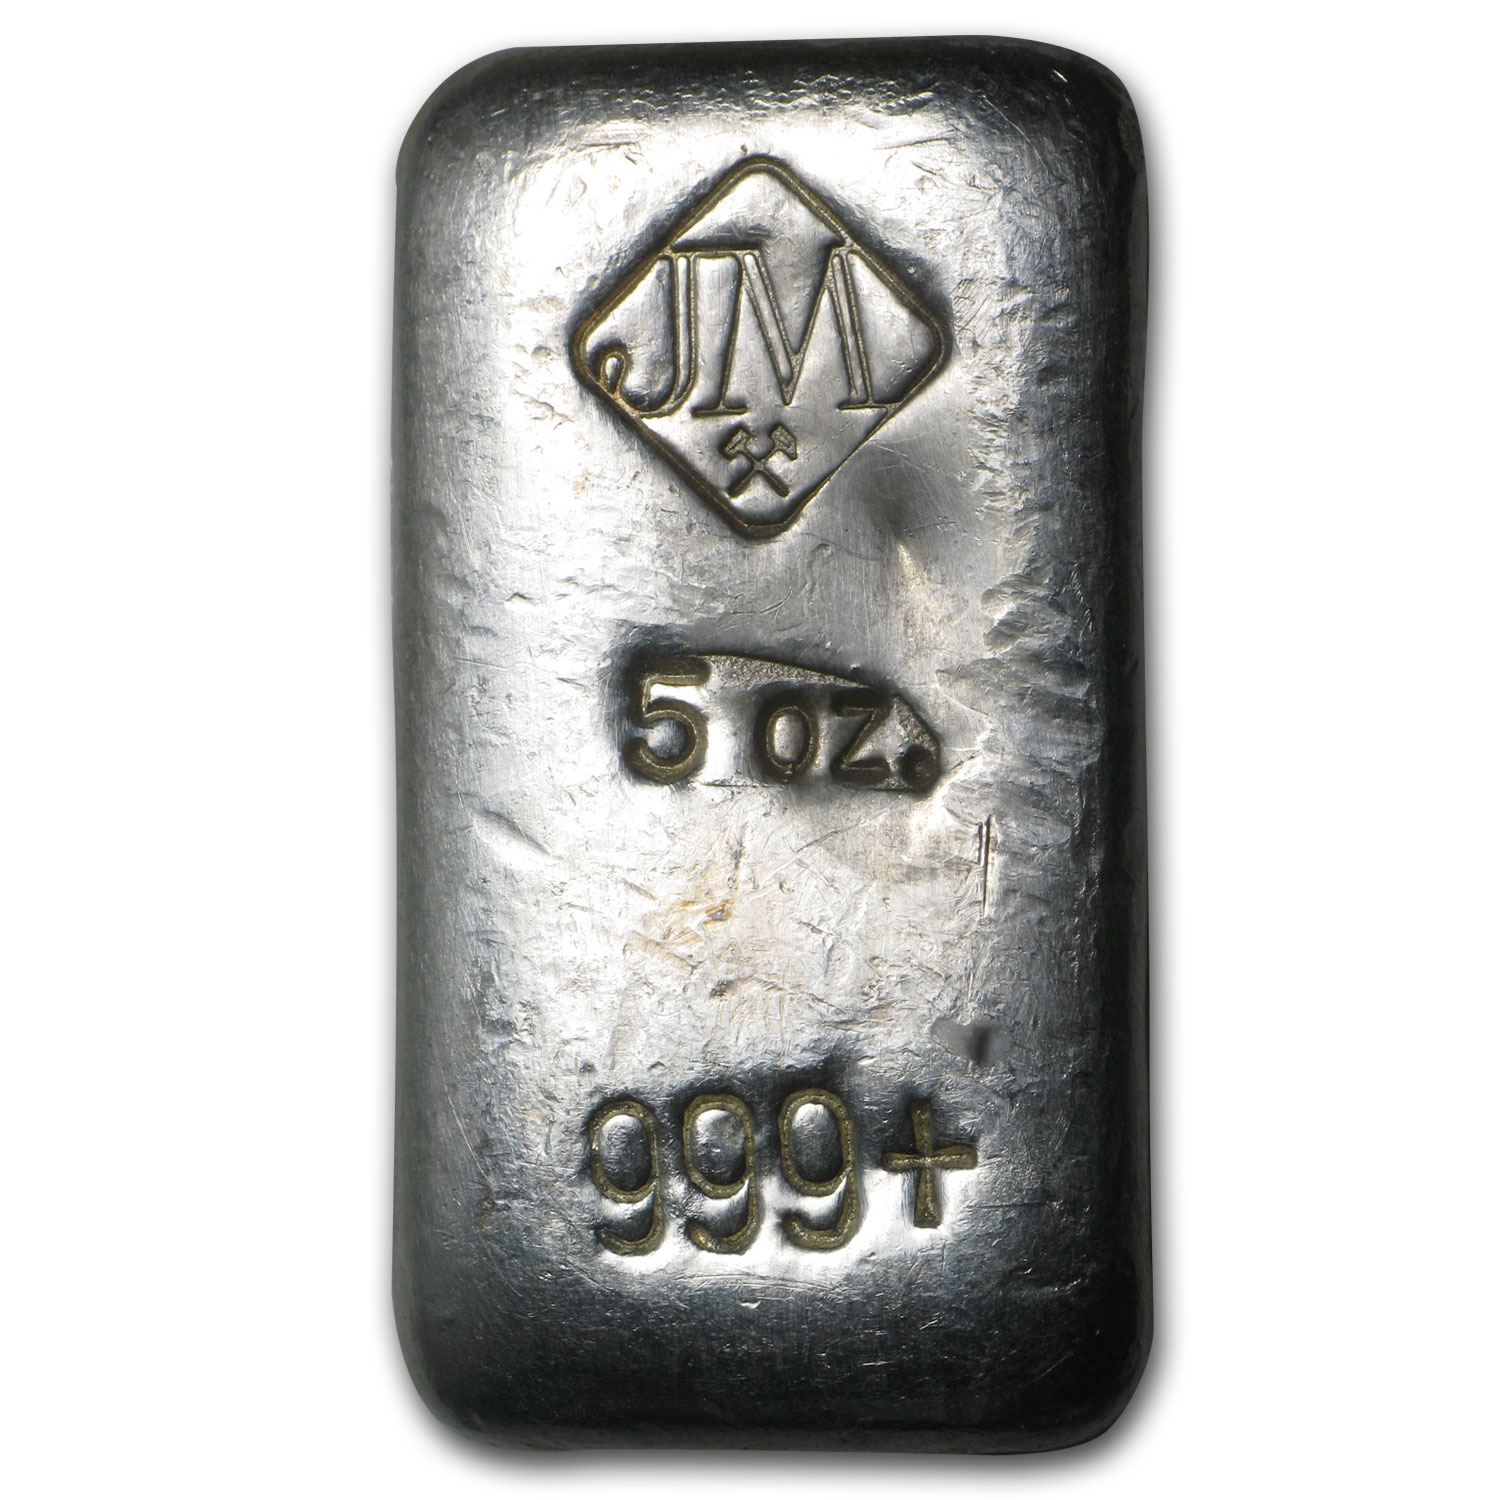 5 oz Silver Bar - Johnson Matthey (Poured/Pudgy)